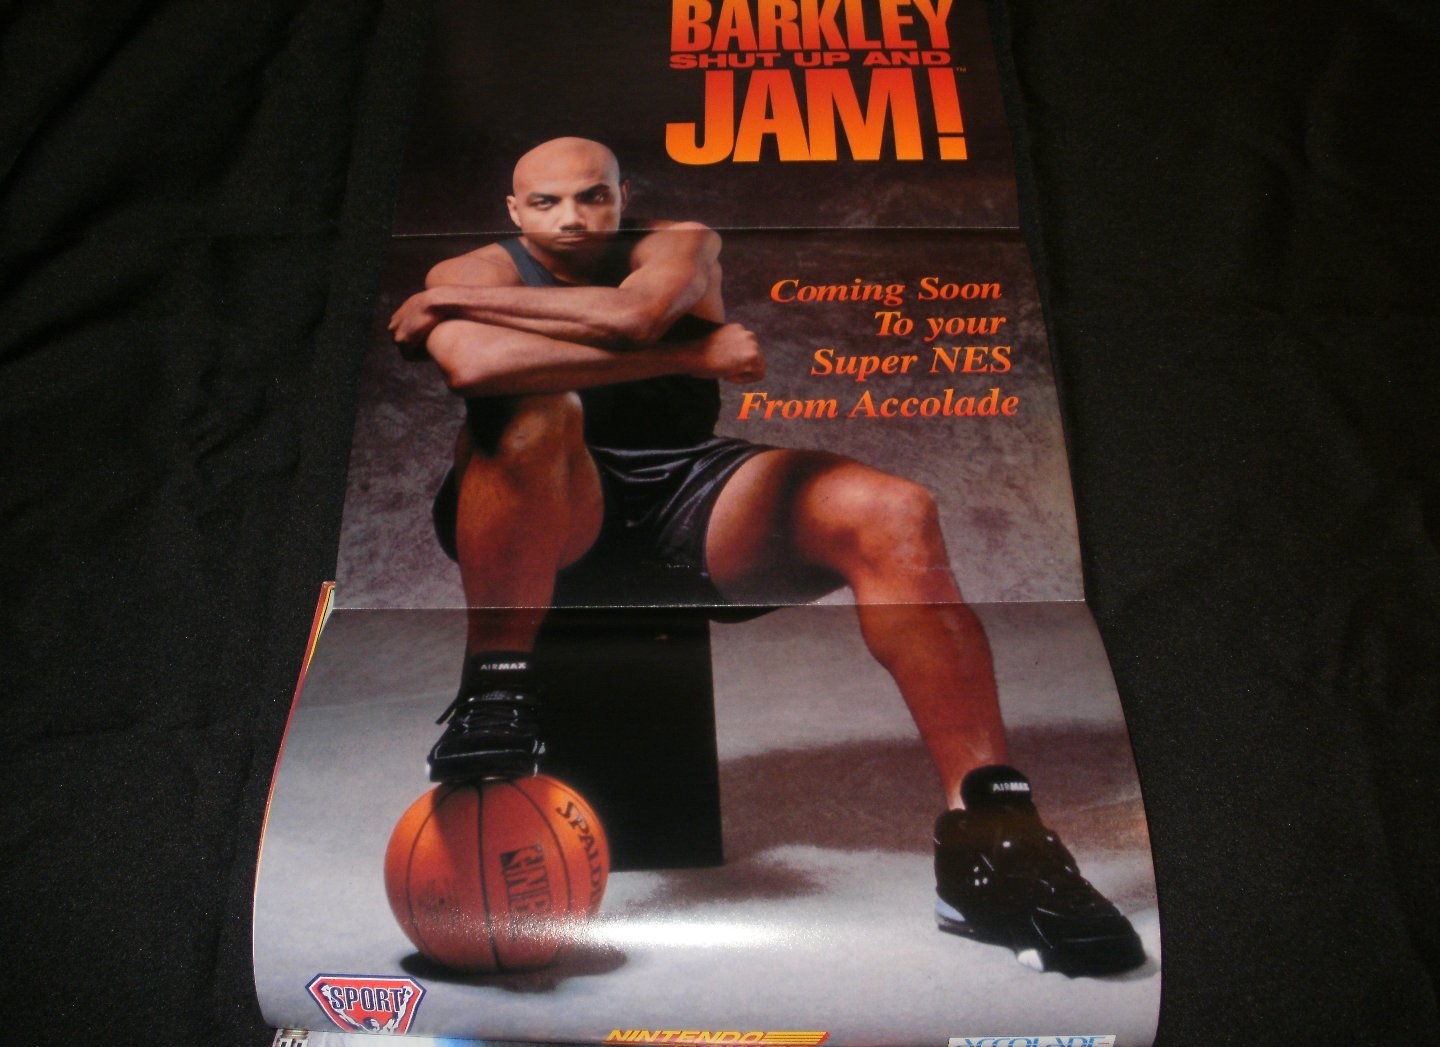 Barkley: Shut Up and Jam Poster - Nintendo Power April, 1994 - Never Used